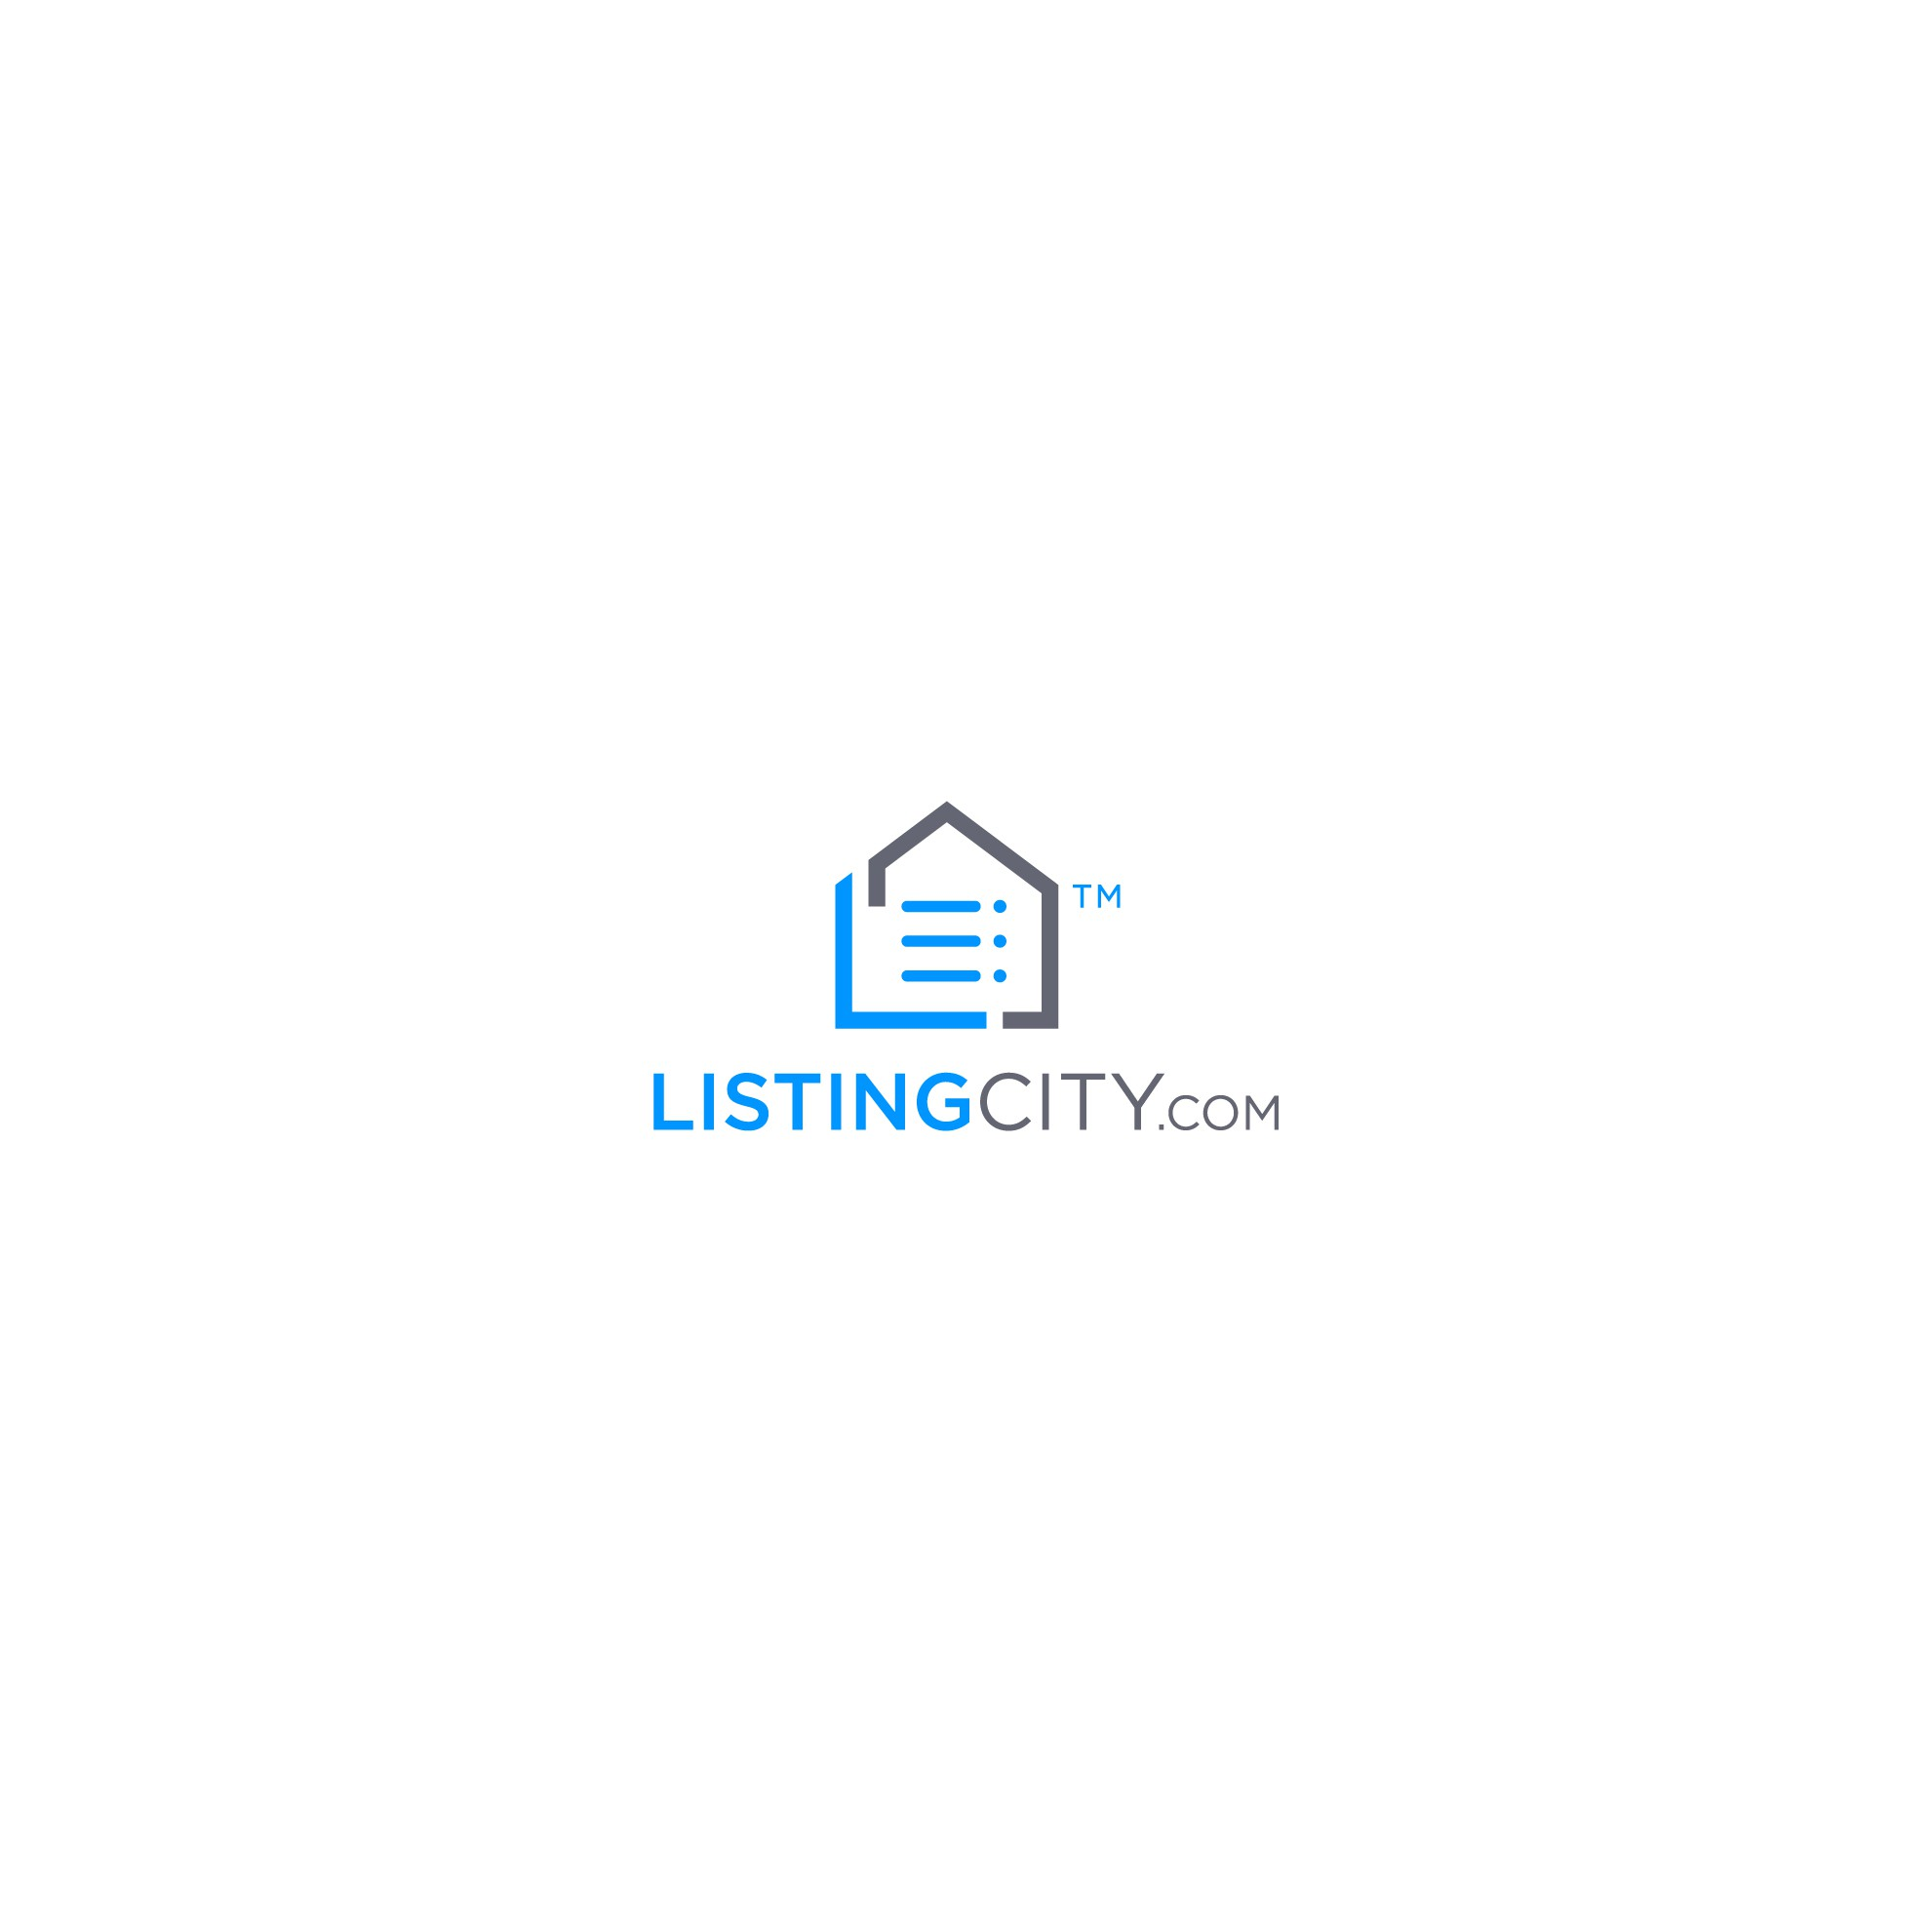 Logo for a Website to post real estate listings